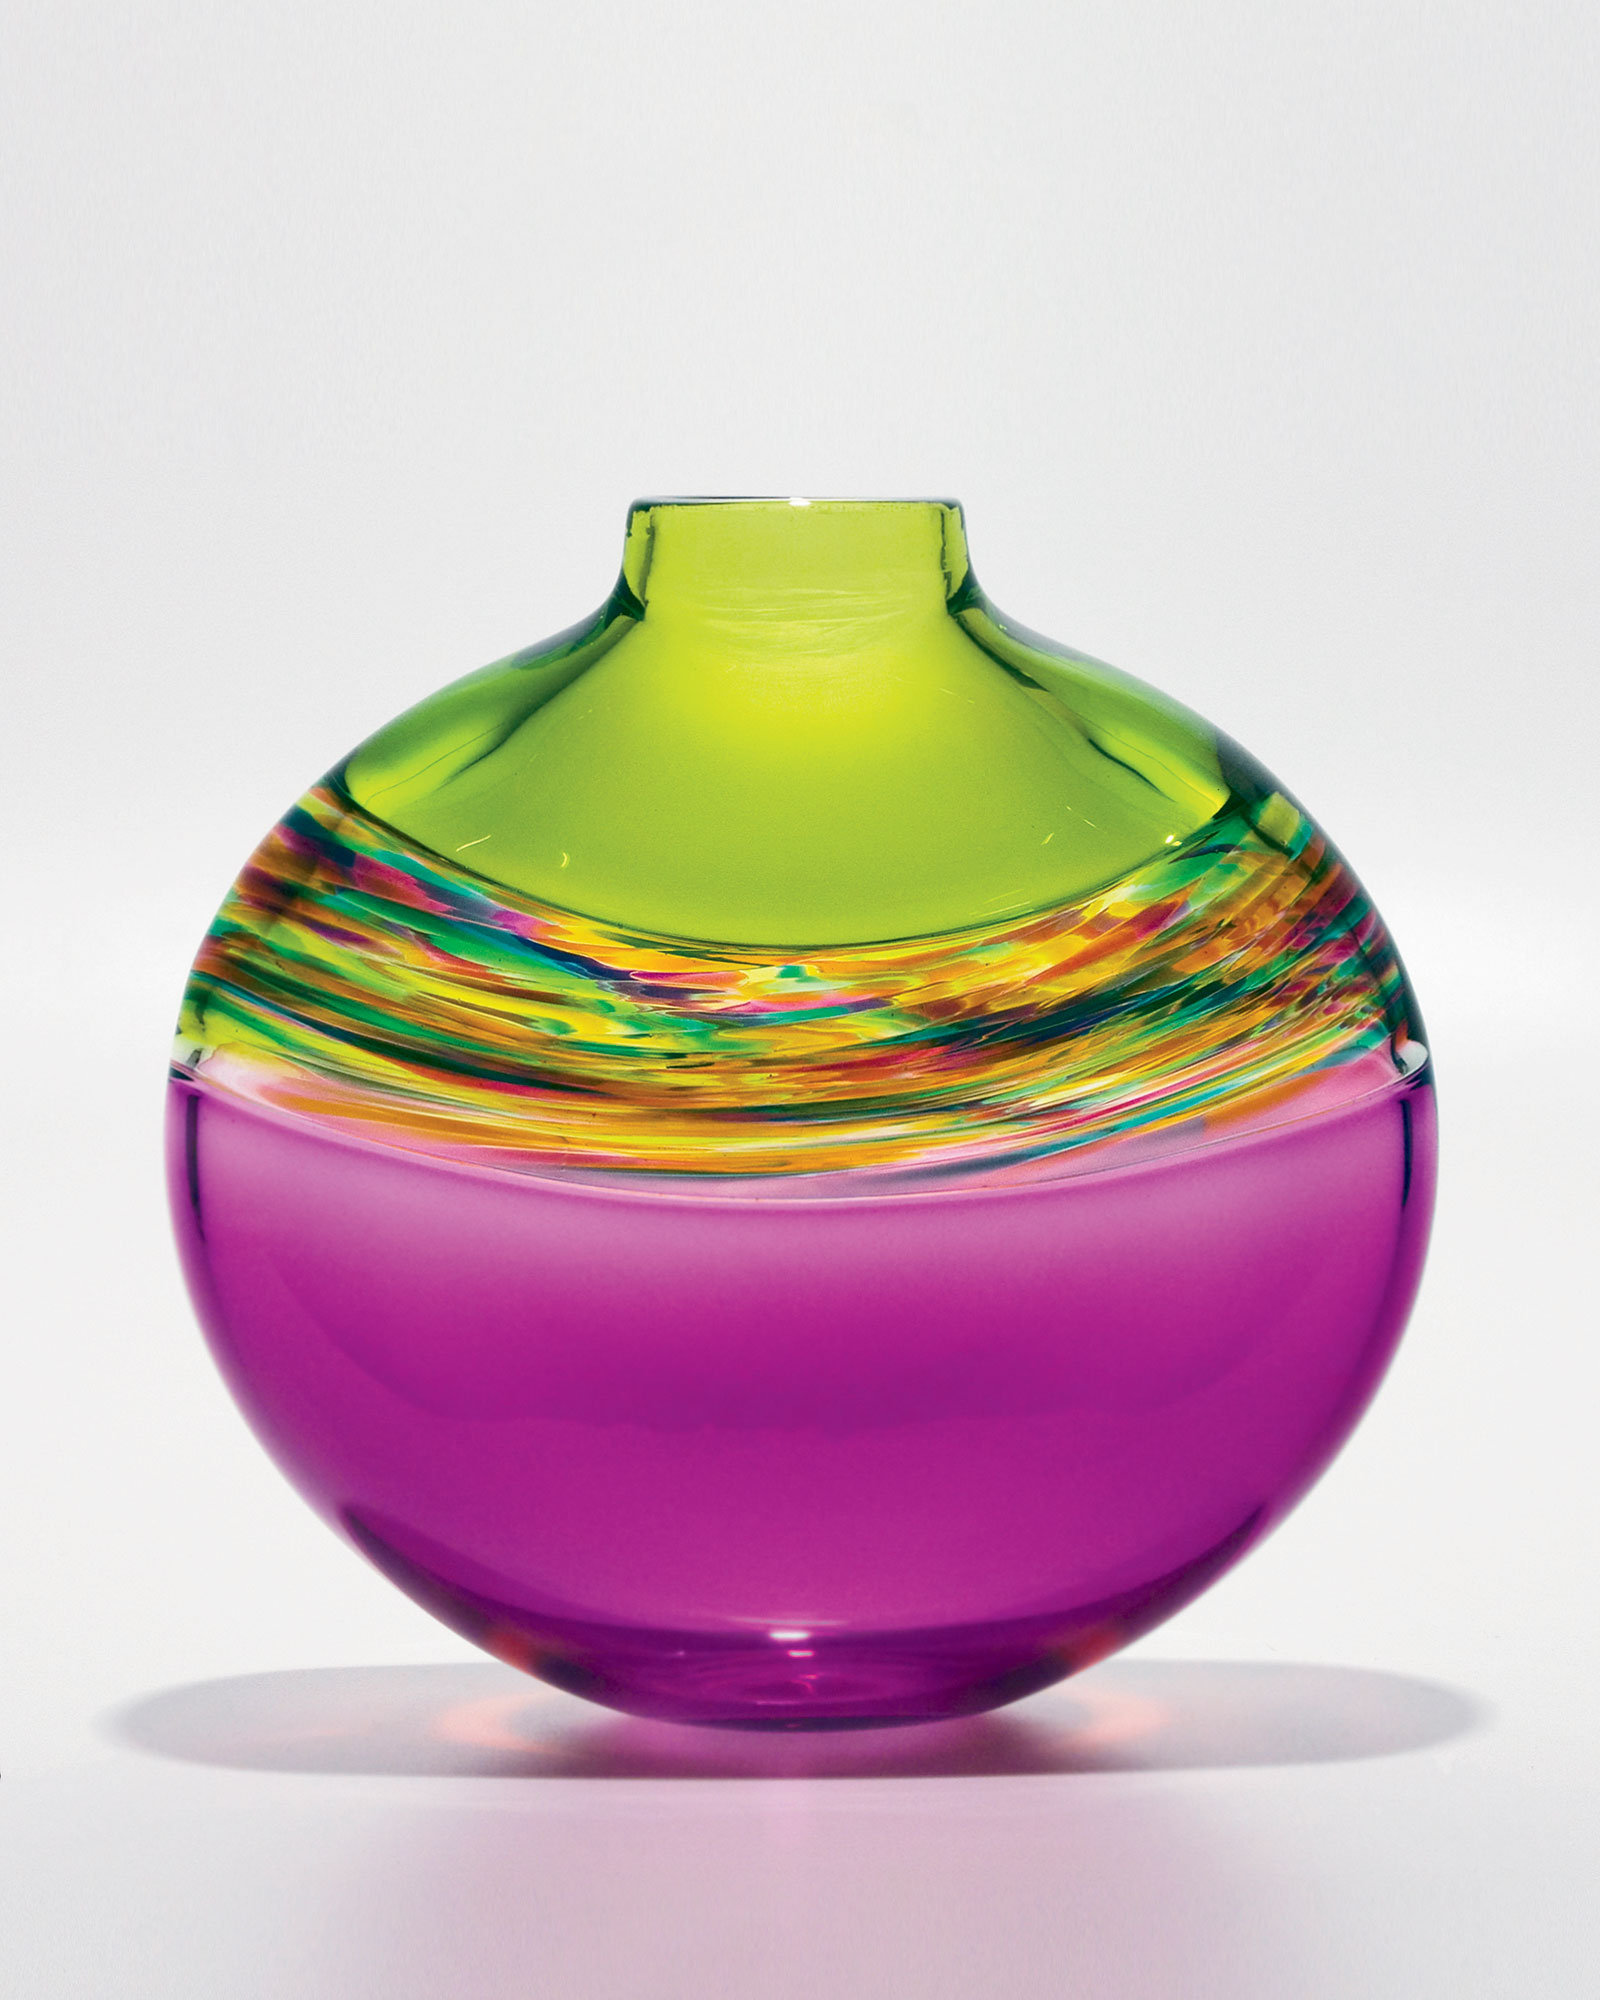 Flat Transparent Banded Vortex Vase in Lime Spring Violet - Art Glass Vase - by Michael Trimpol